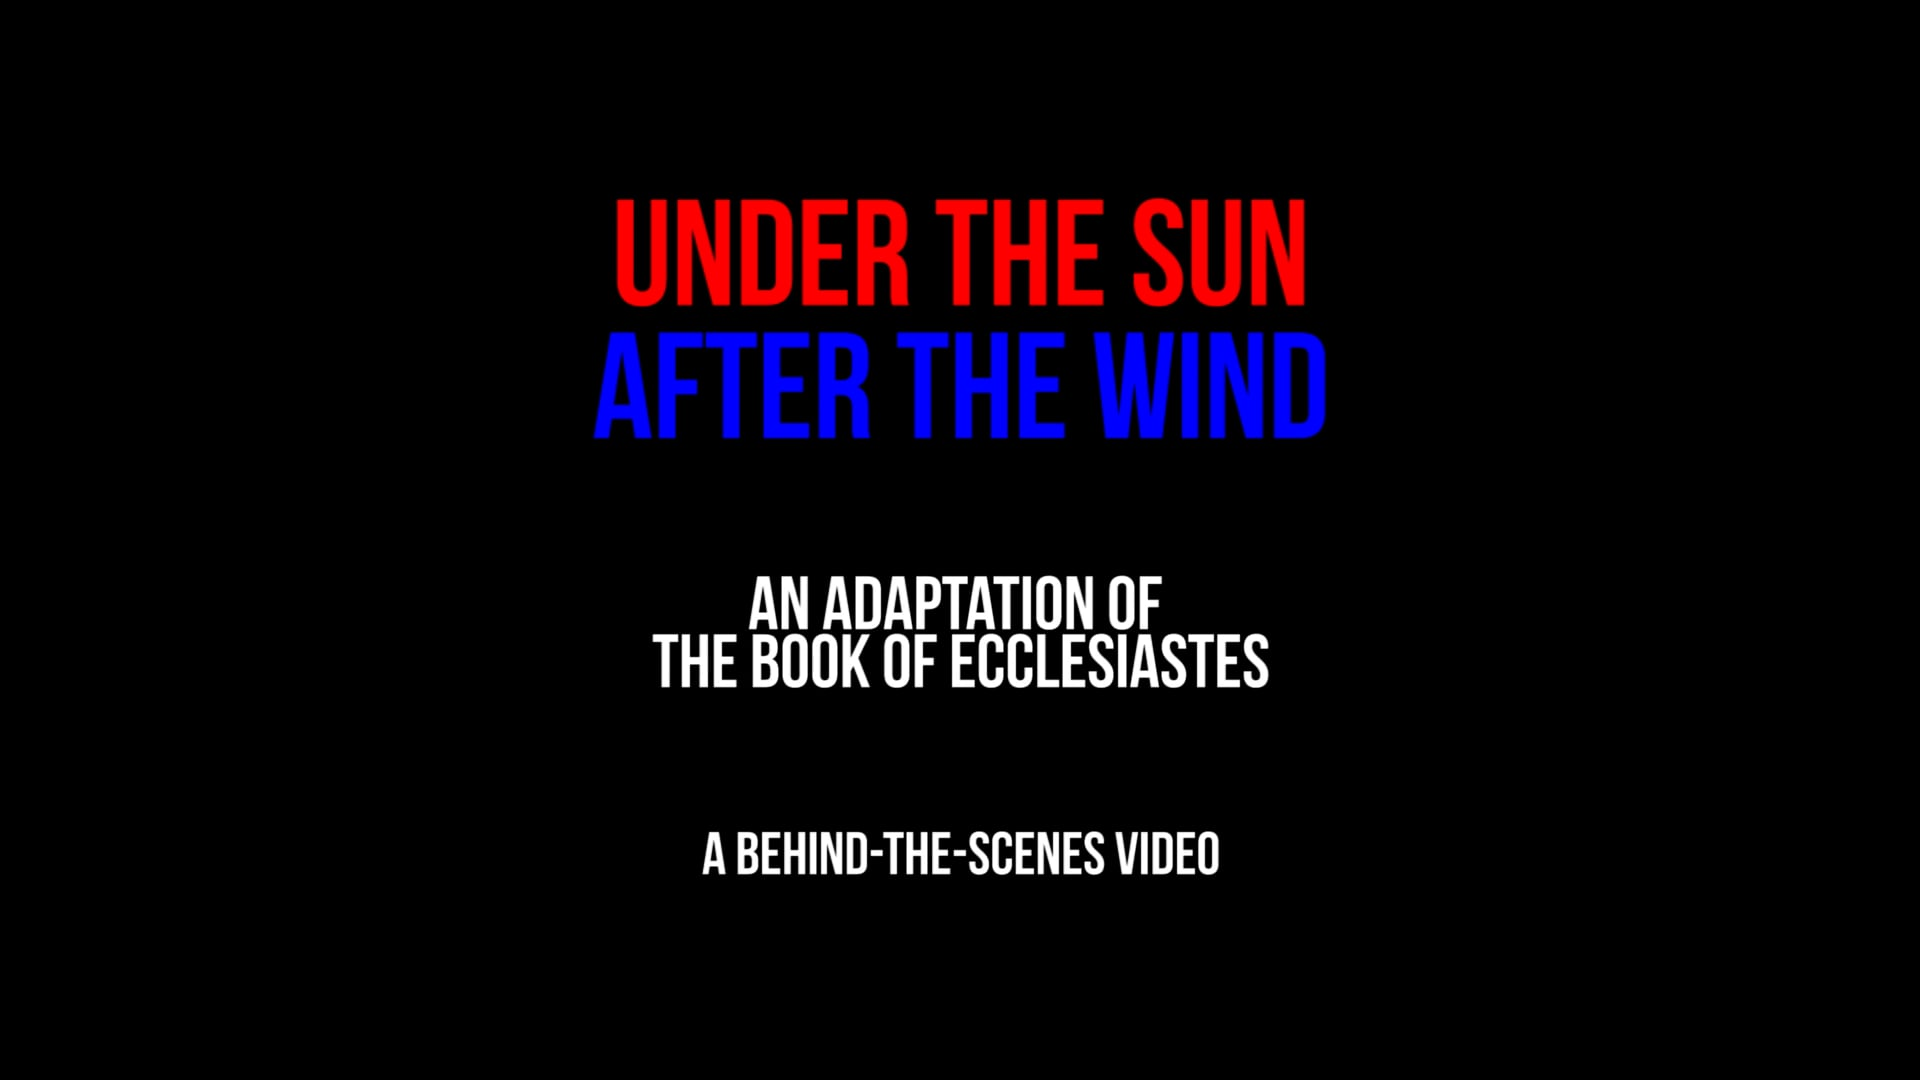 Under the Sun, After the Wind (2021) - Behind-the-Scenes